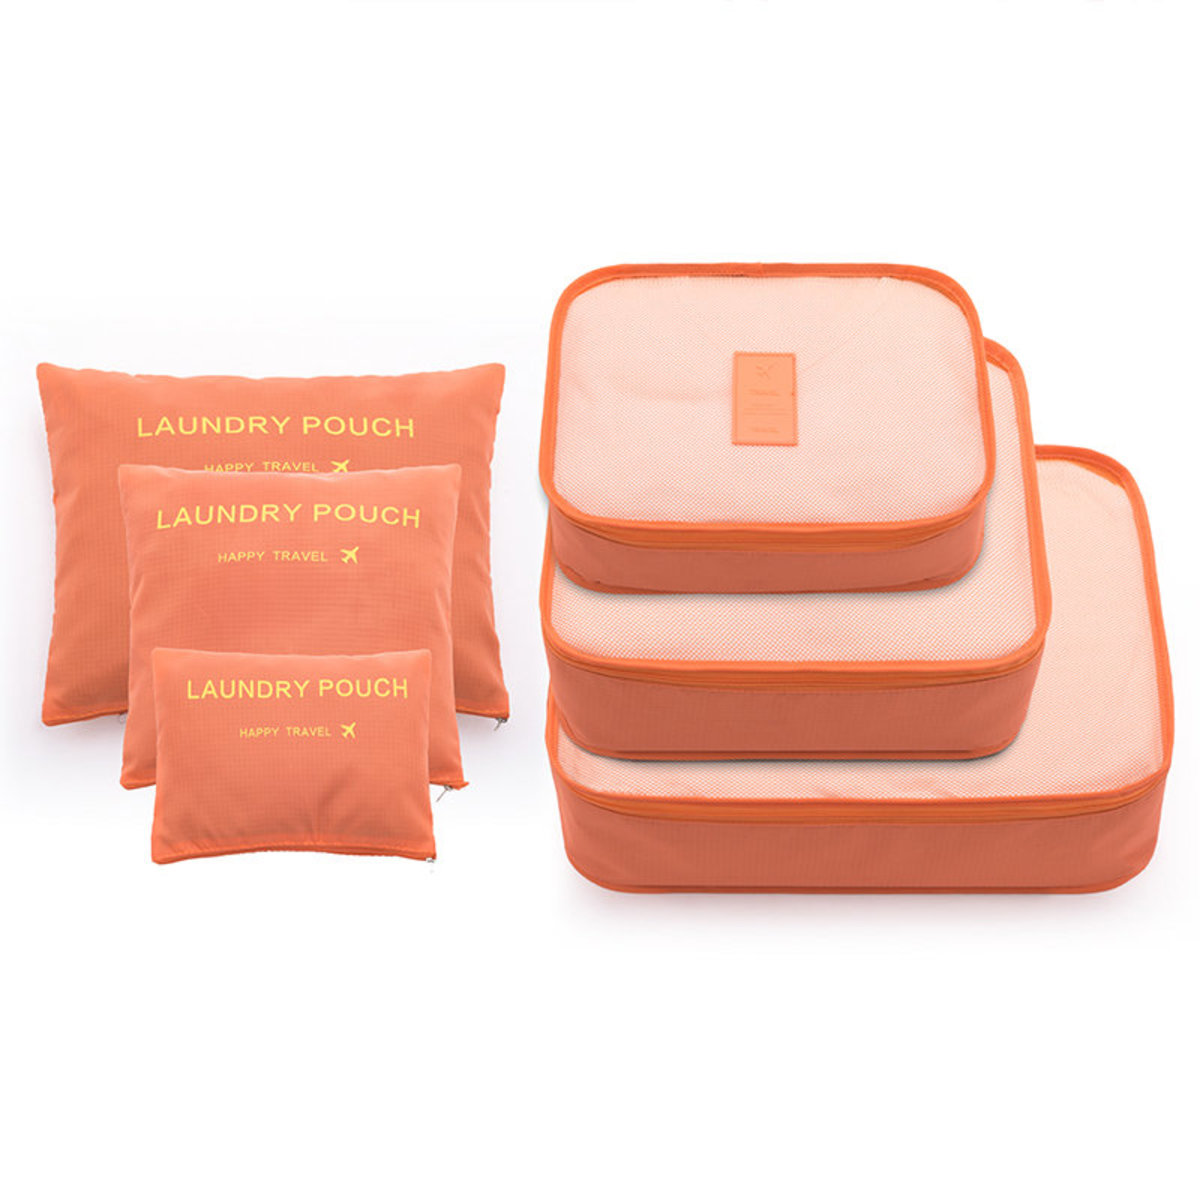 Japan Style Travel Storage Bag (1 set of 6 pcs) - Orange